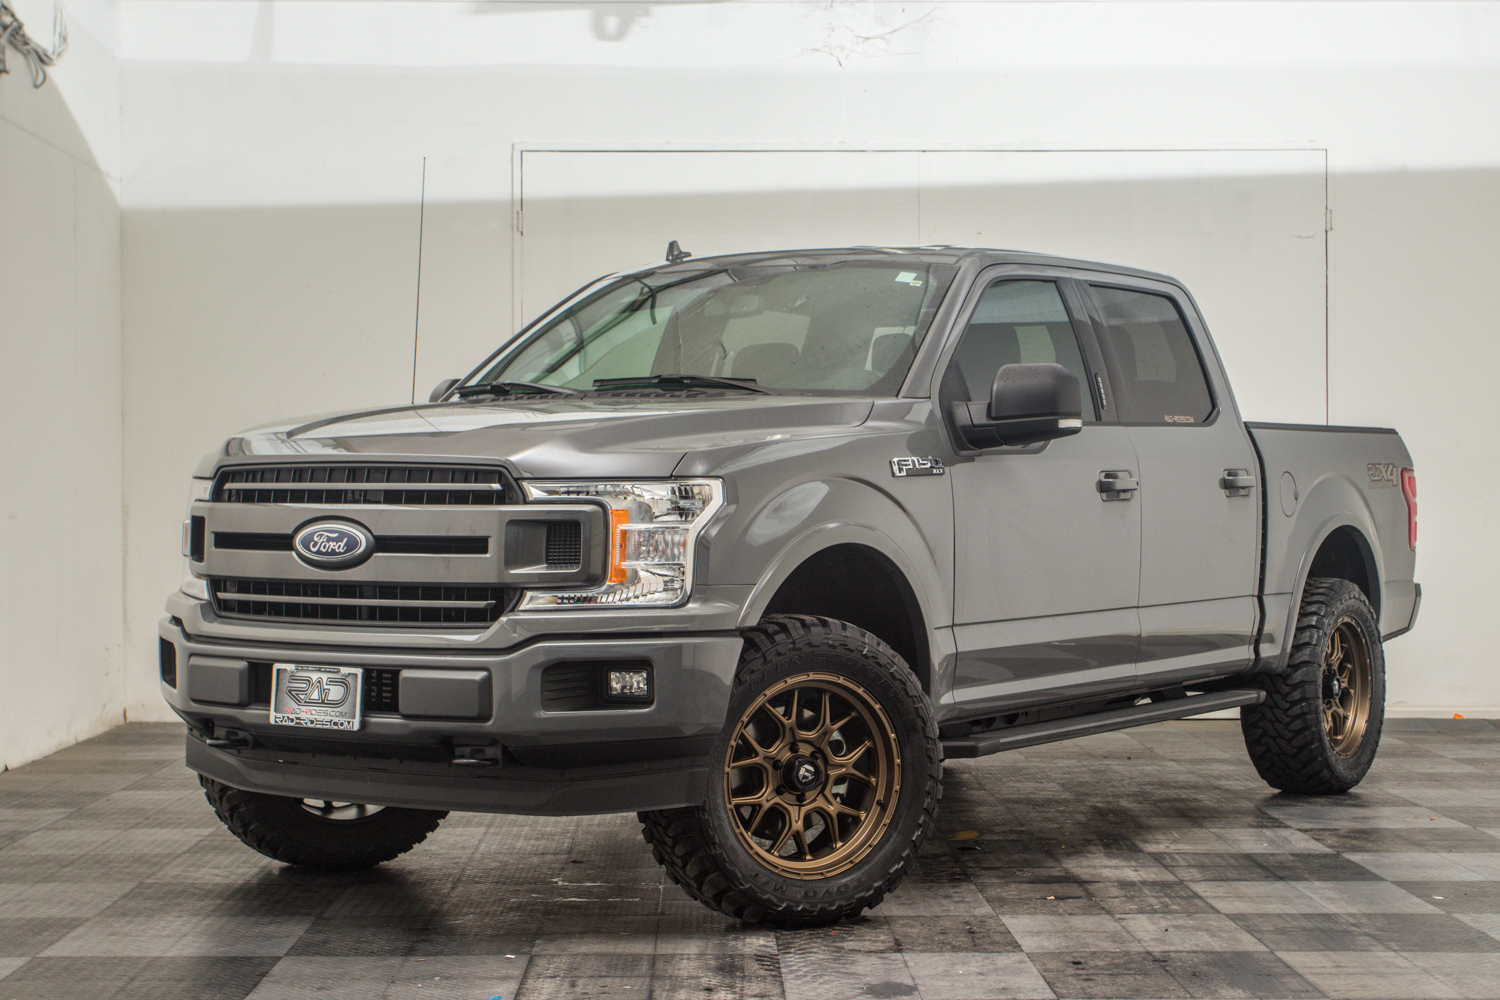 2019 Ford F 150 Build Price >> 2019 Ford F 150 Lead Foot With Fuel Tech Bronze Wheels Lift Level Kit